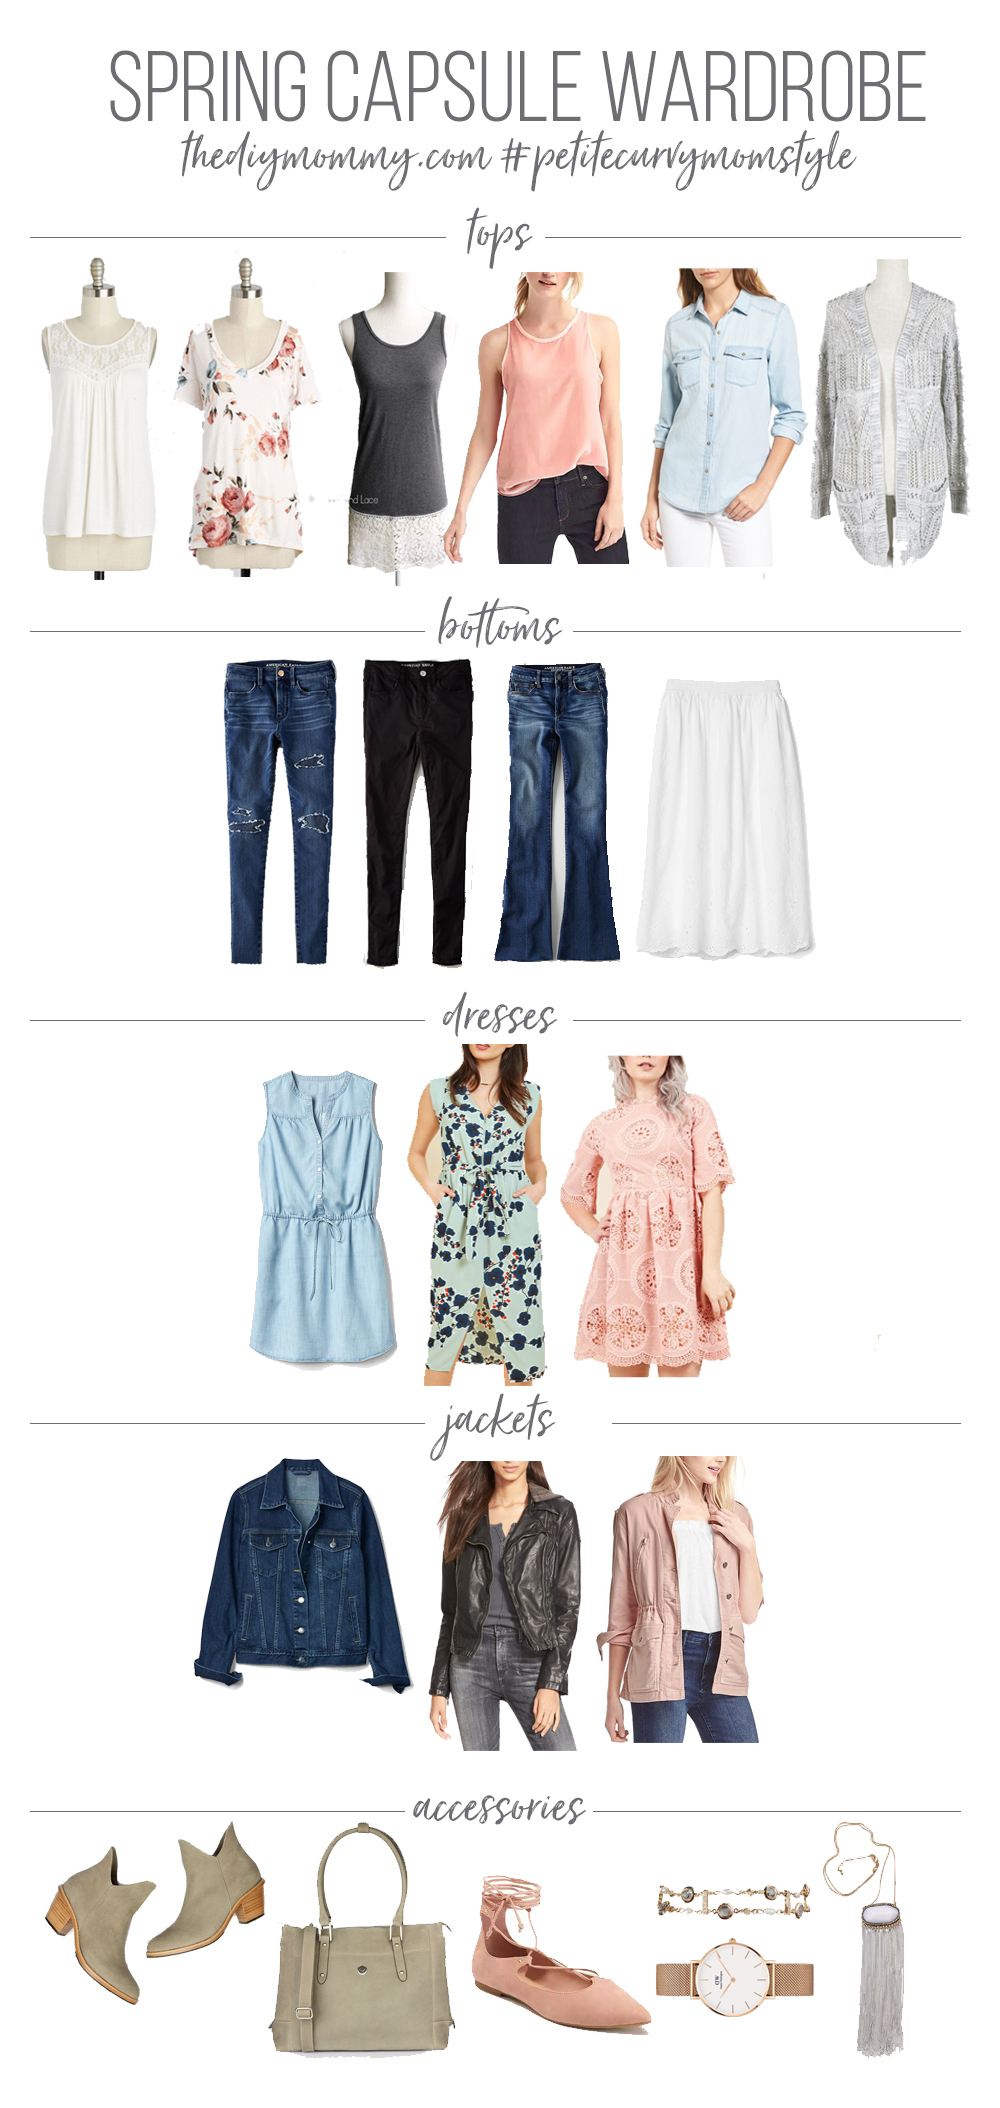 Spring Capsule Wardrobe - Spring Outfit Ideas - Petite Curvy Mom Style